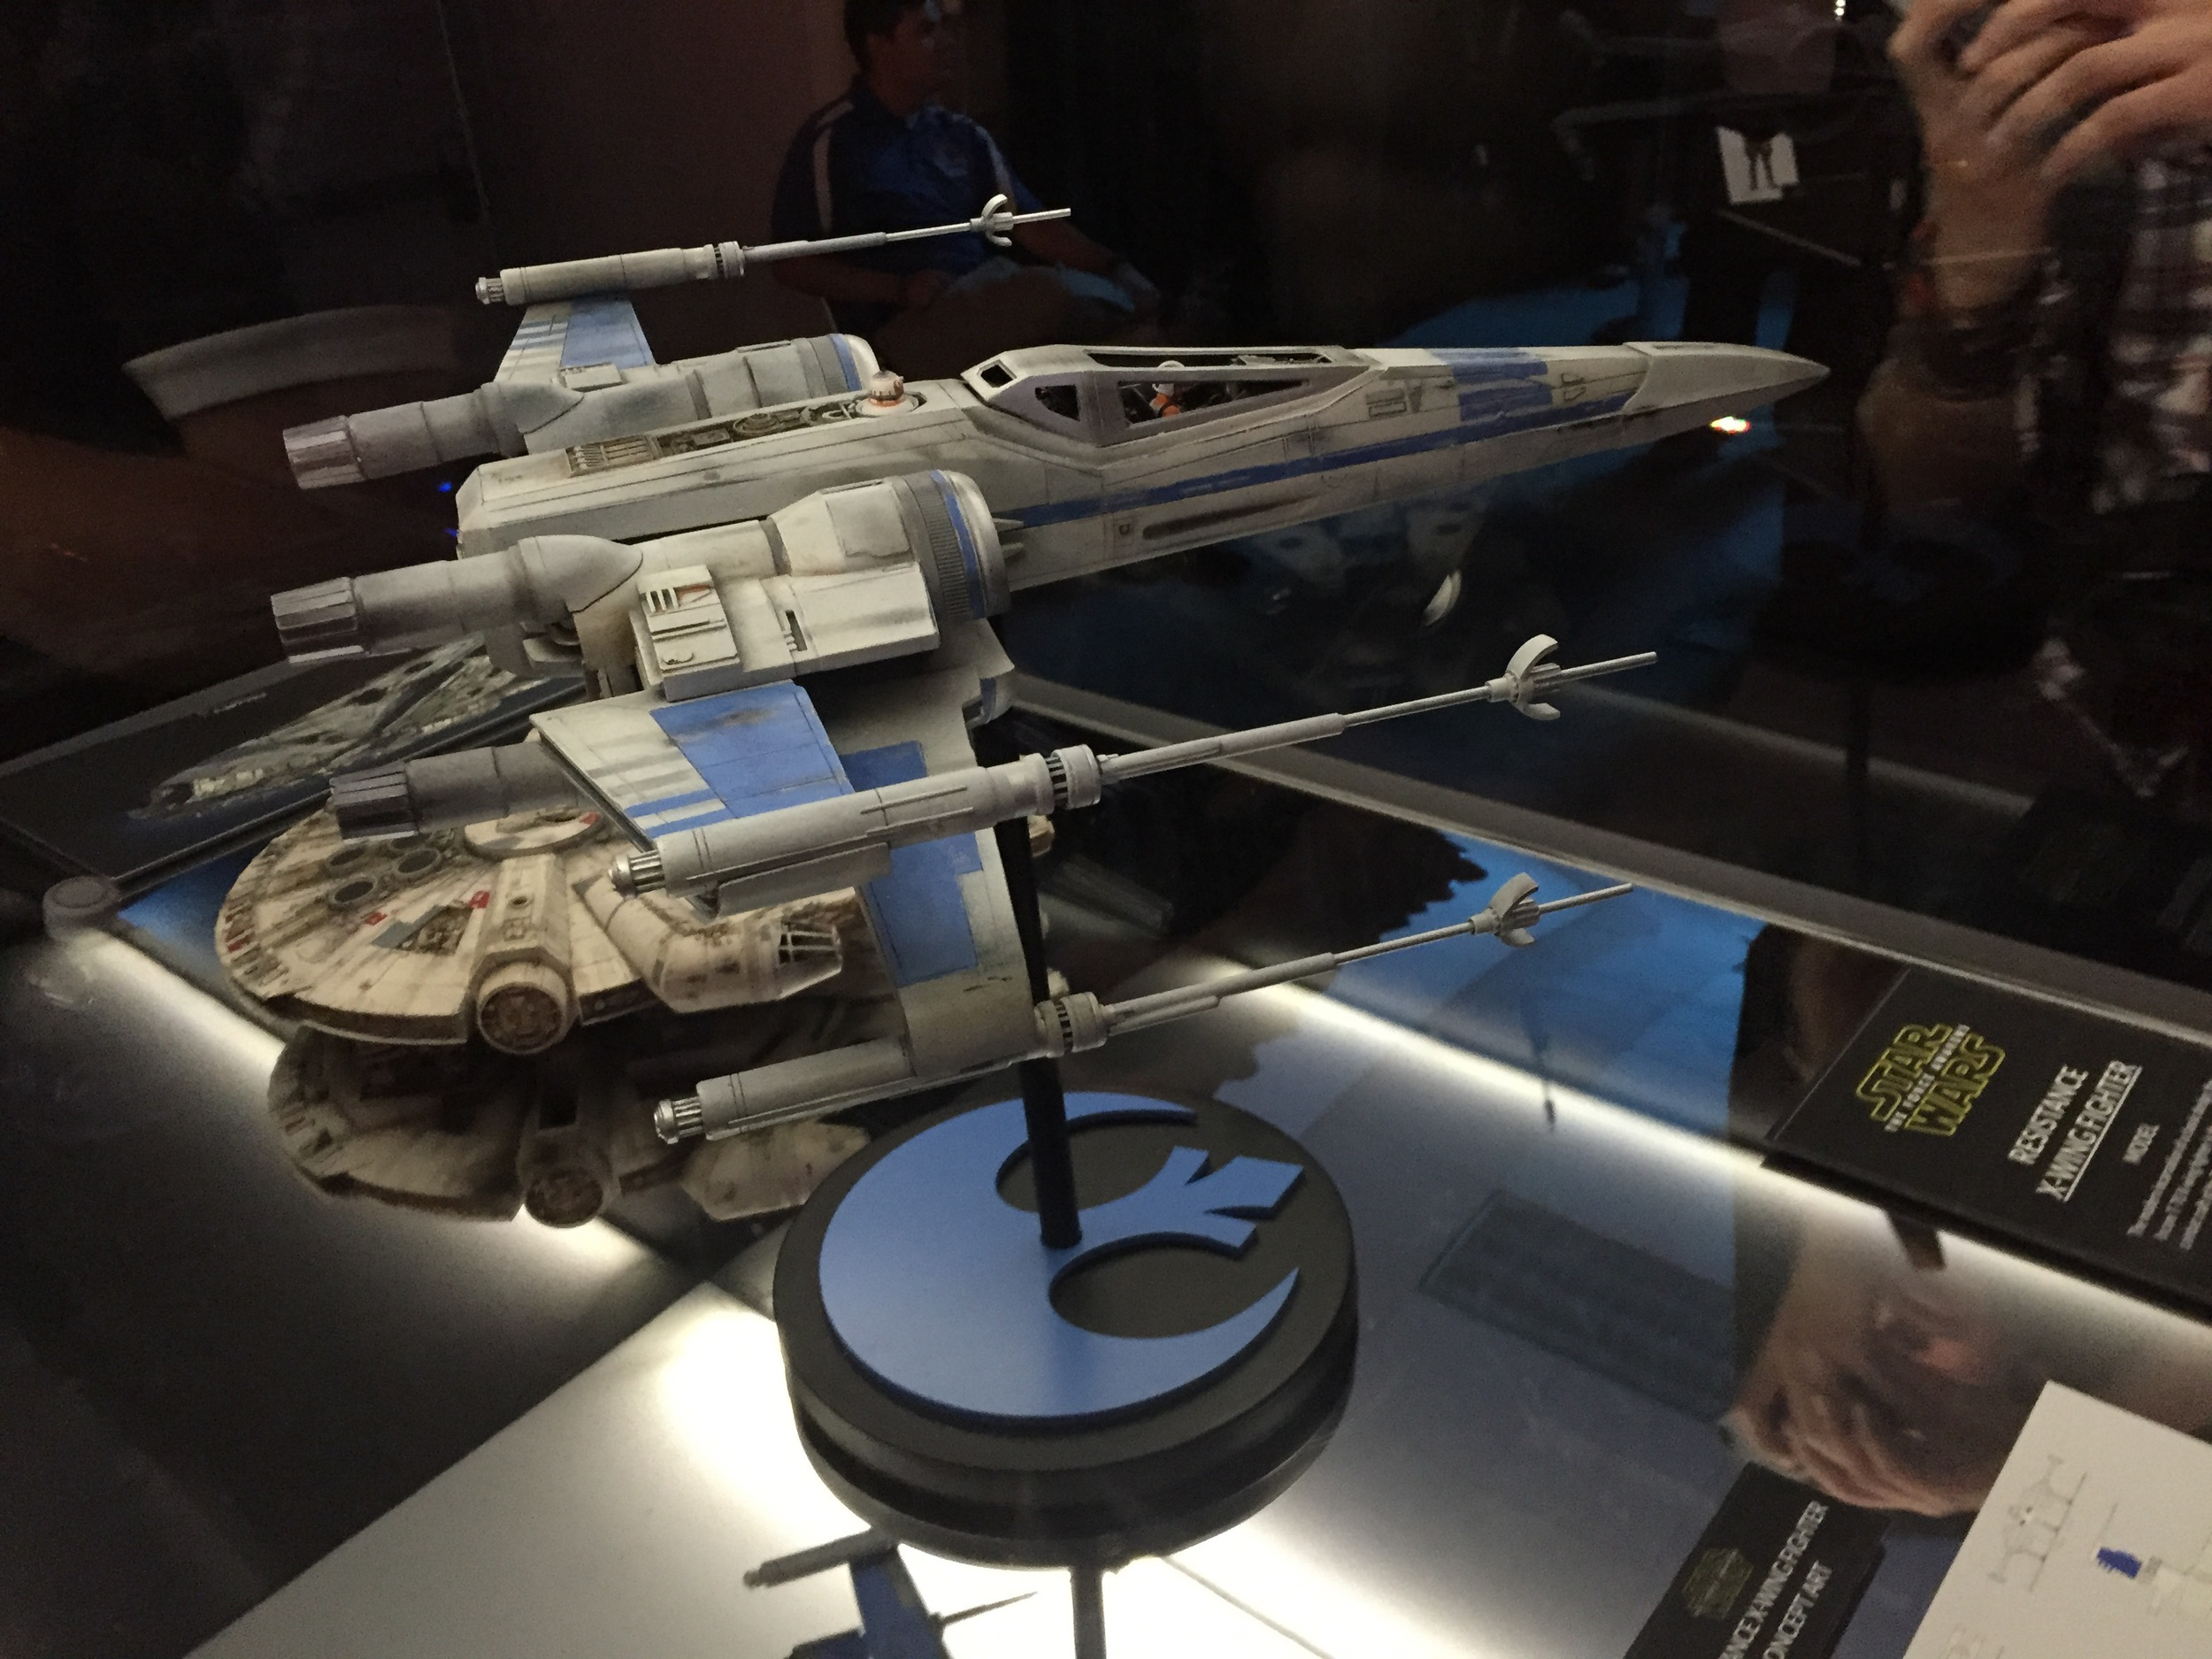 The New X-wing